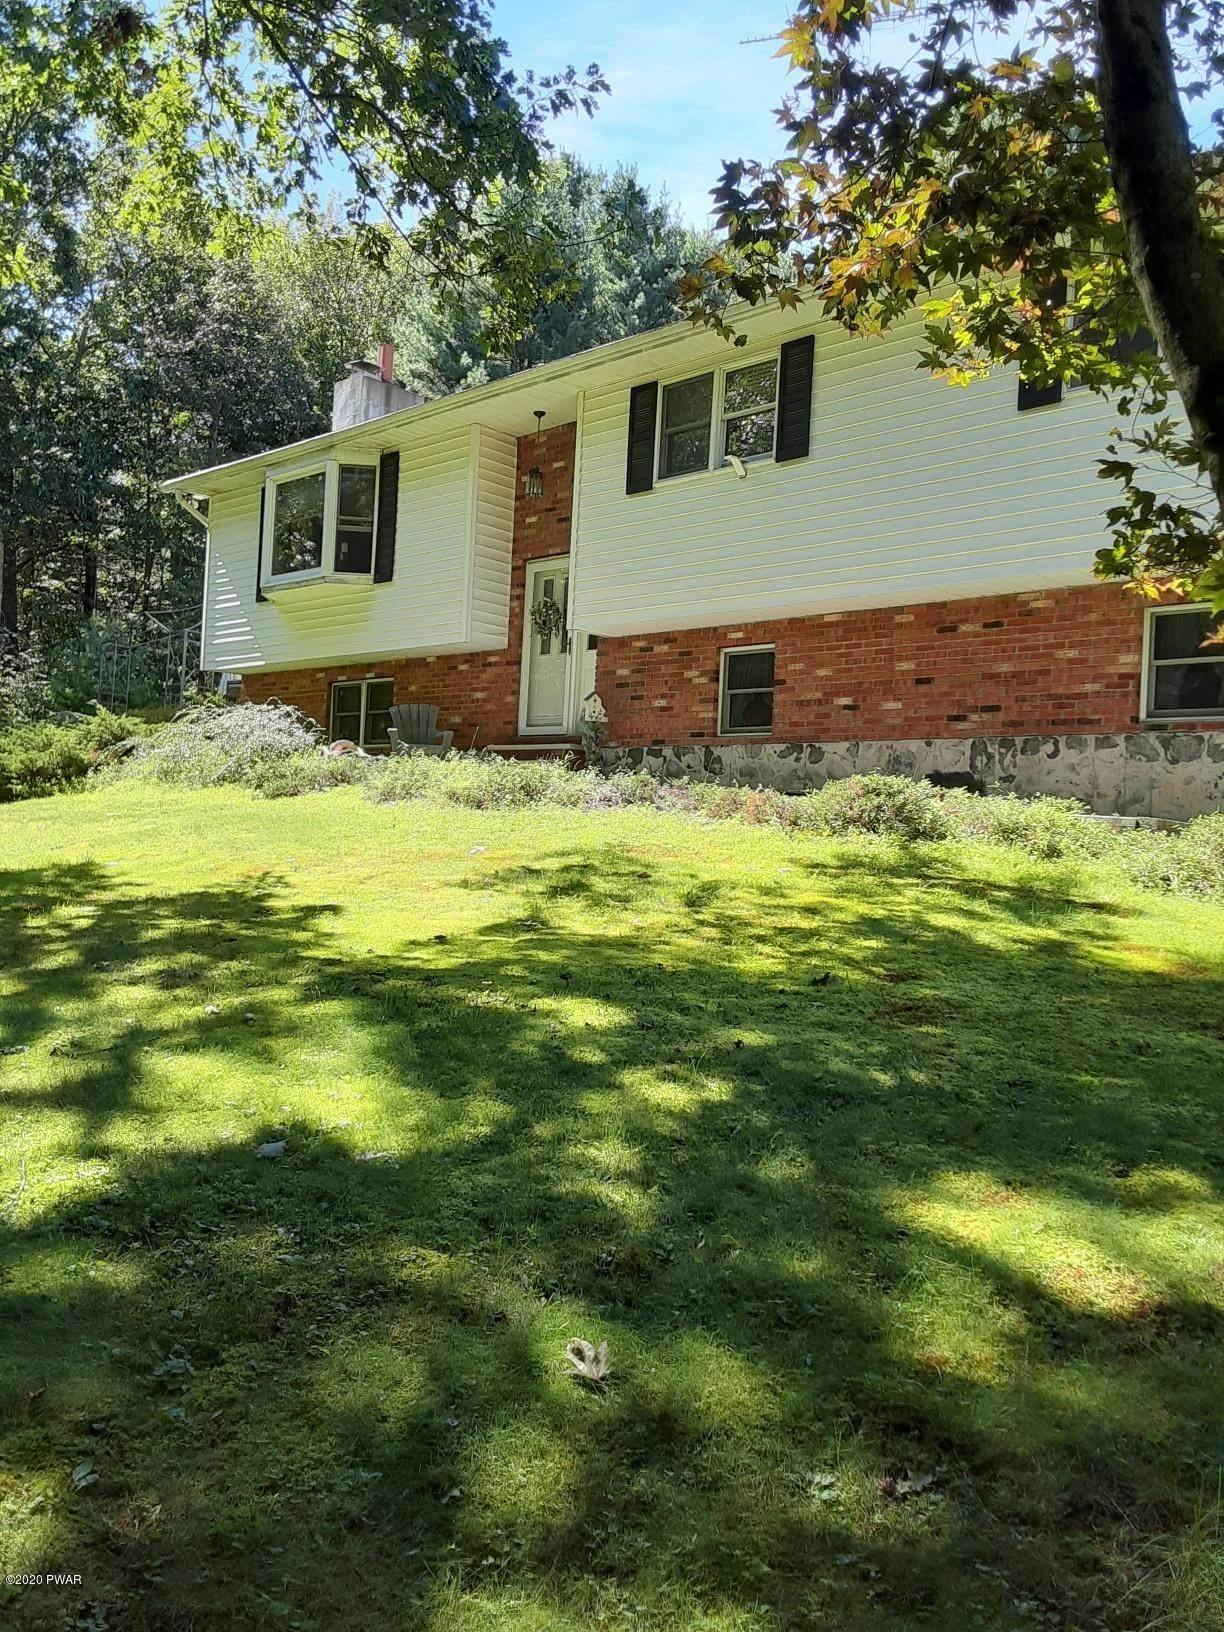 Property for Sale at 268 Foster Hill Rd Milford, Pennsylvania 18337 United States